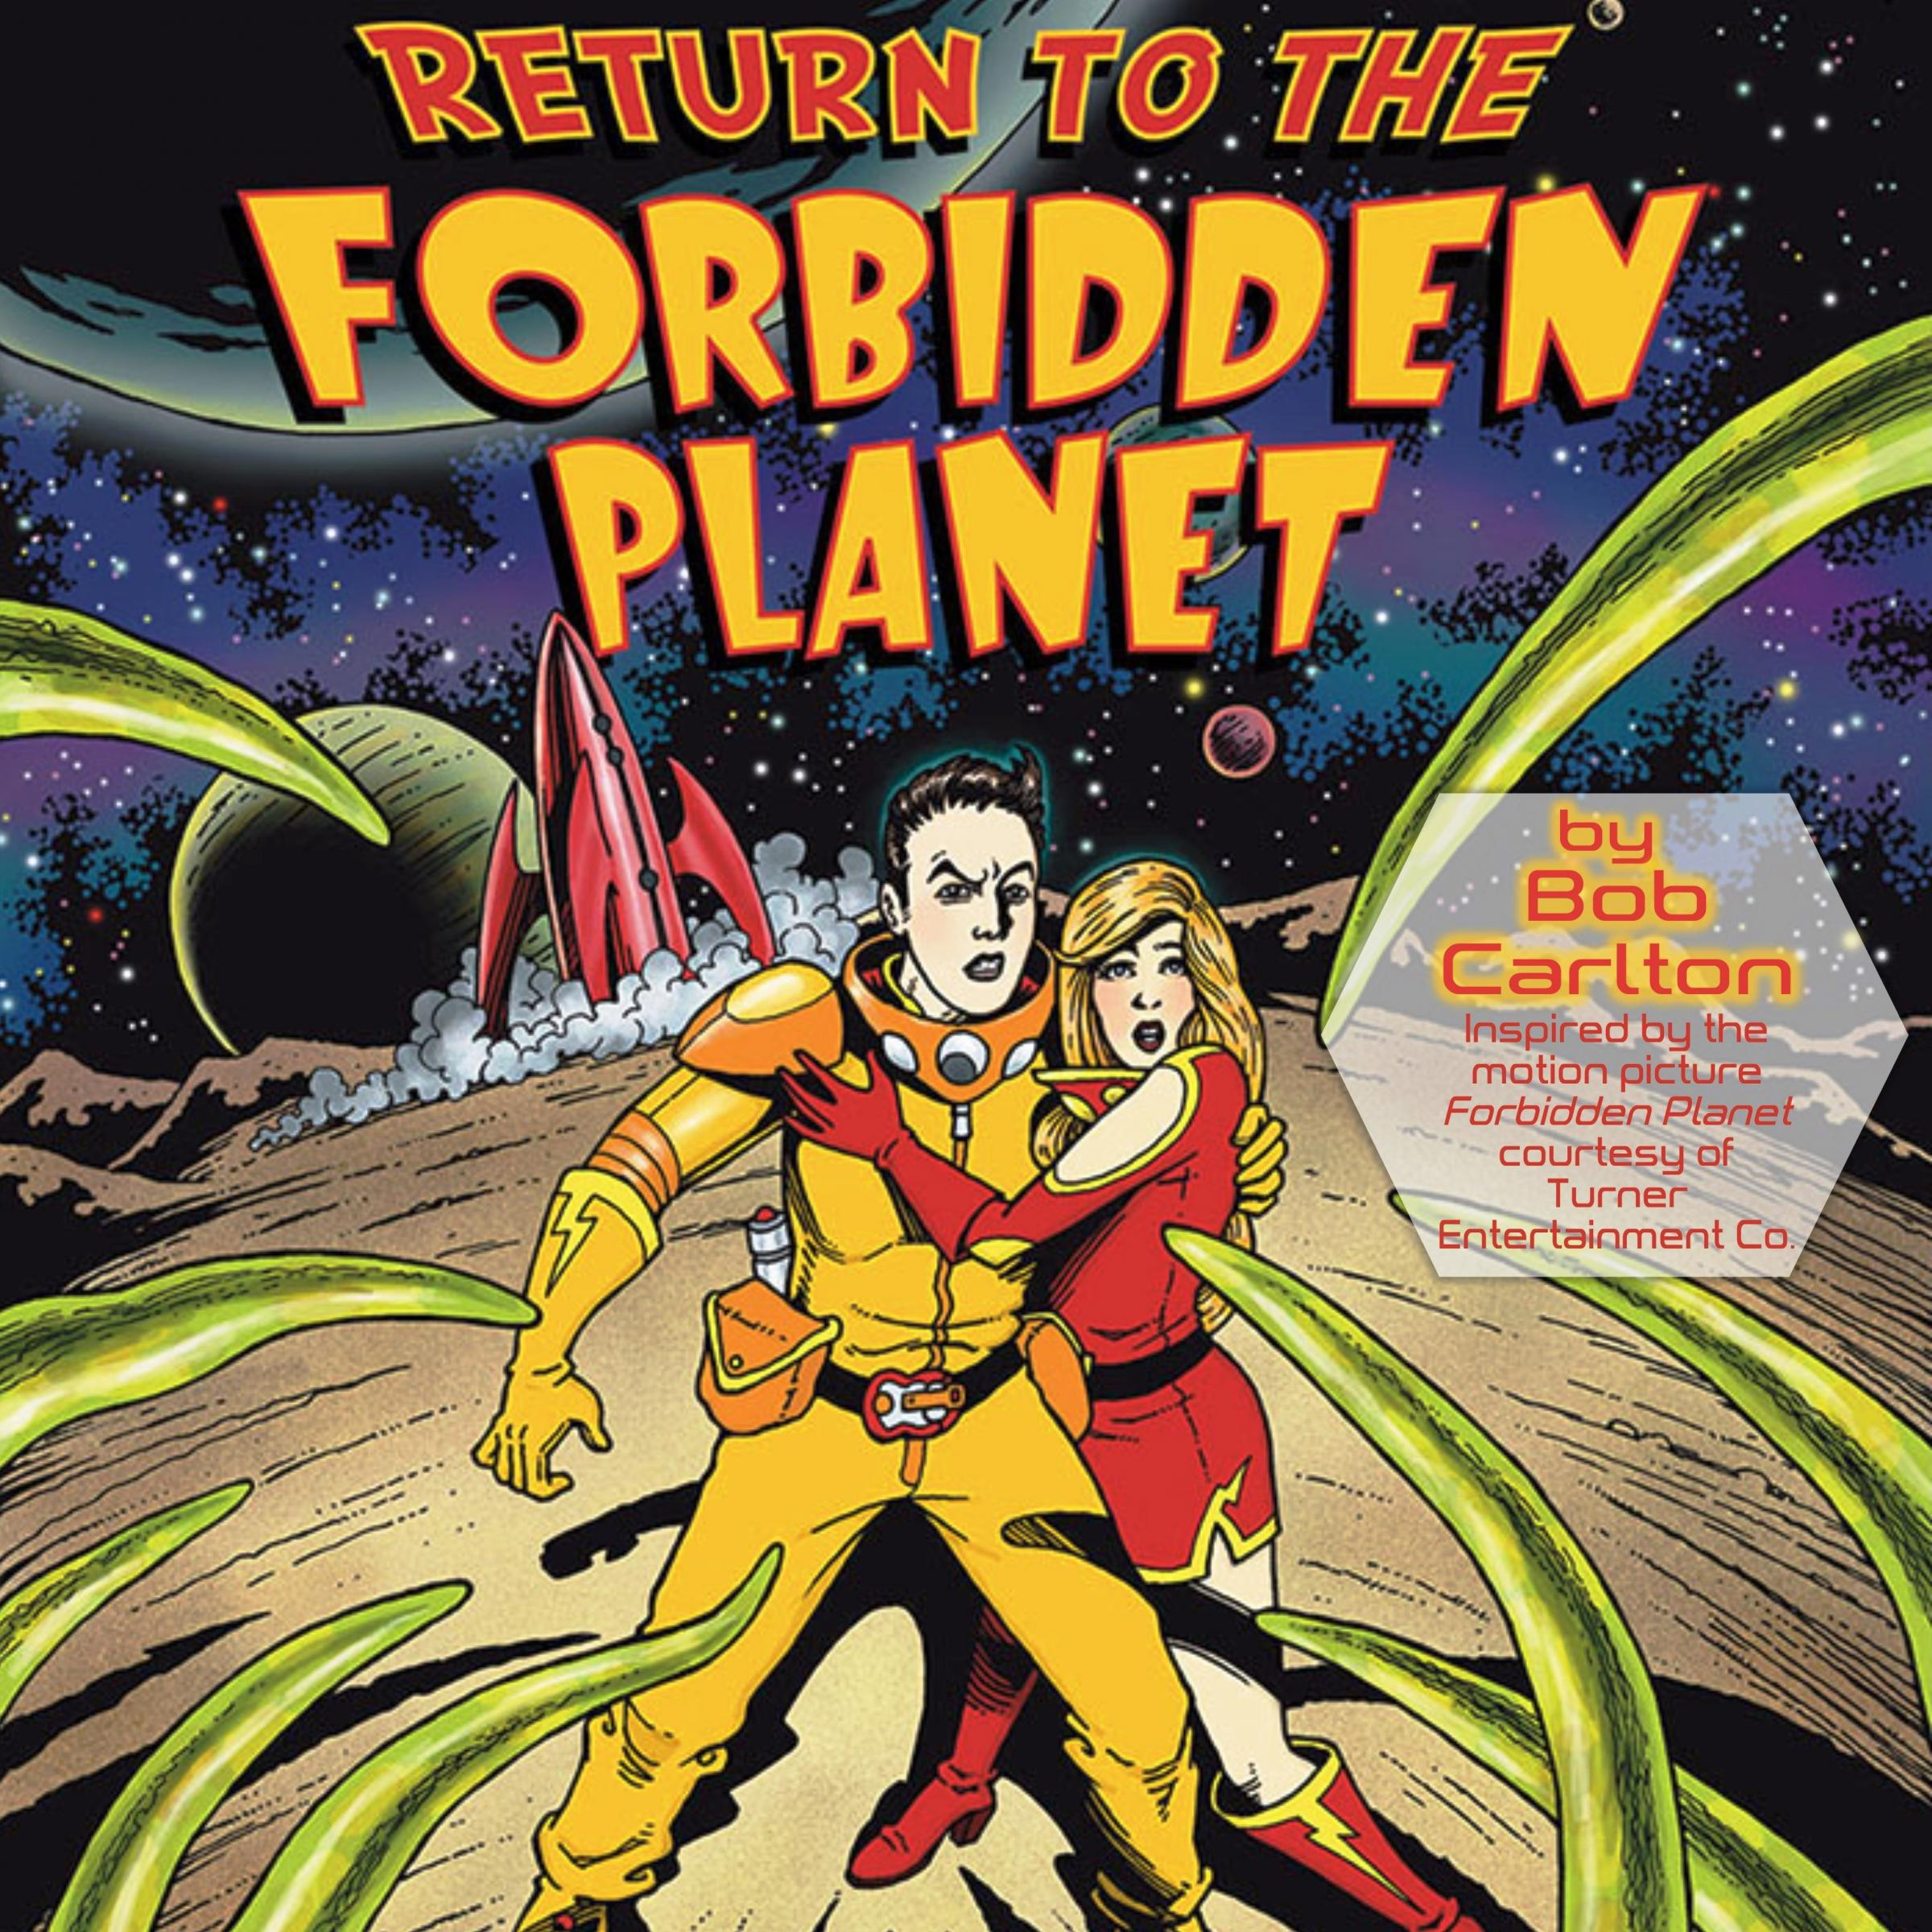 Return to the Forbidden Planet by Bob Carlton, Inspired by the motion picture Forbidden Planet court